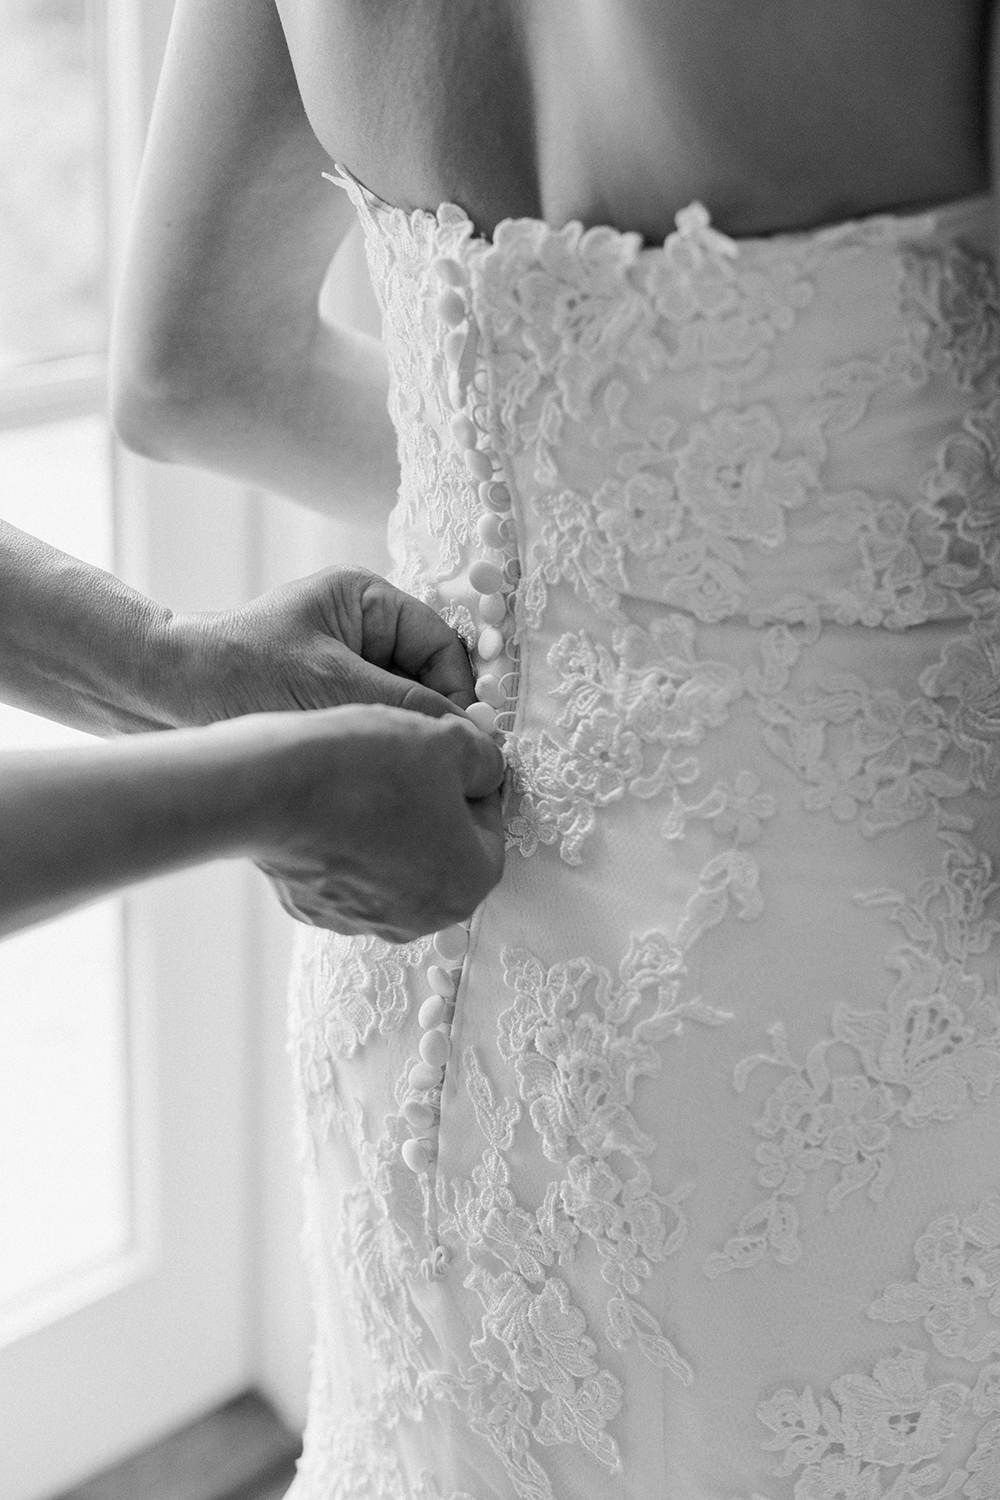 The brides' sister helping put on her wedding dress.